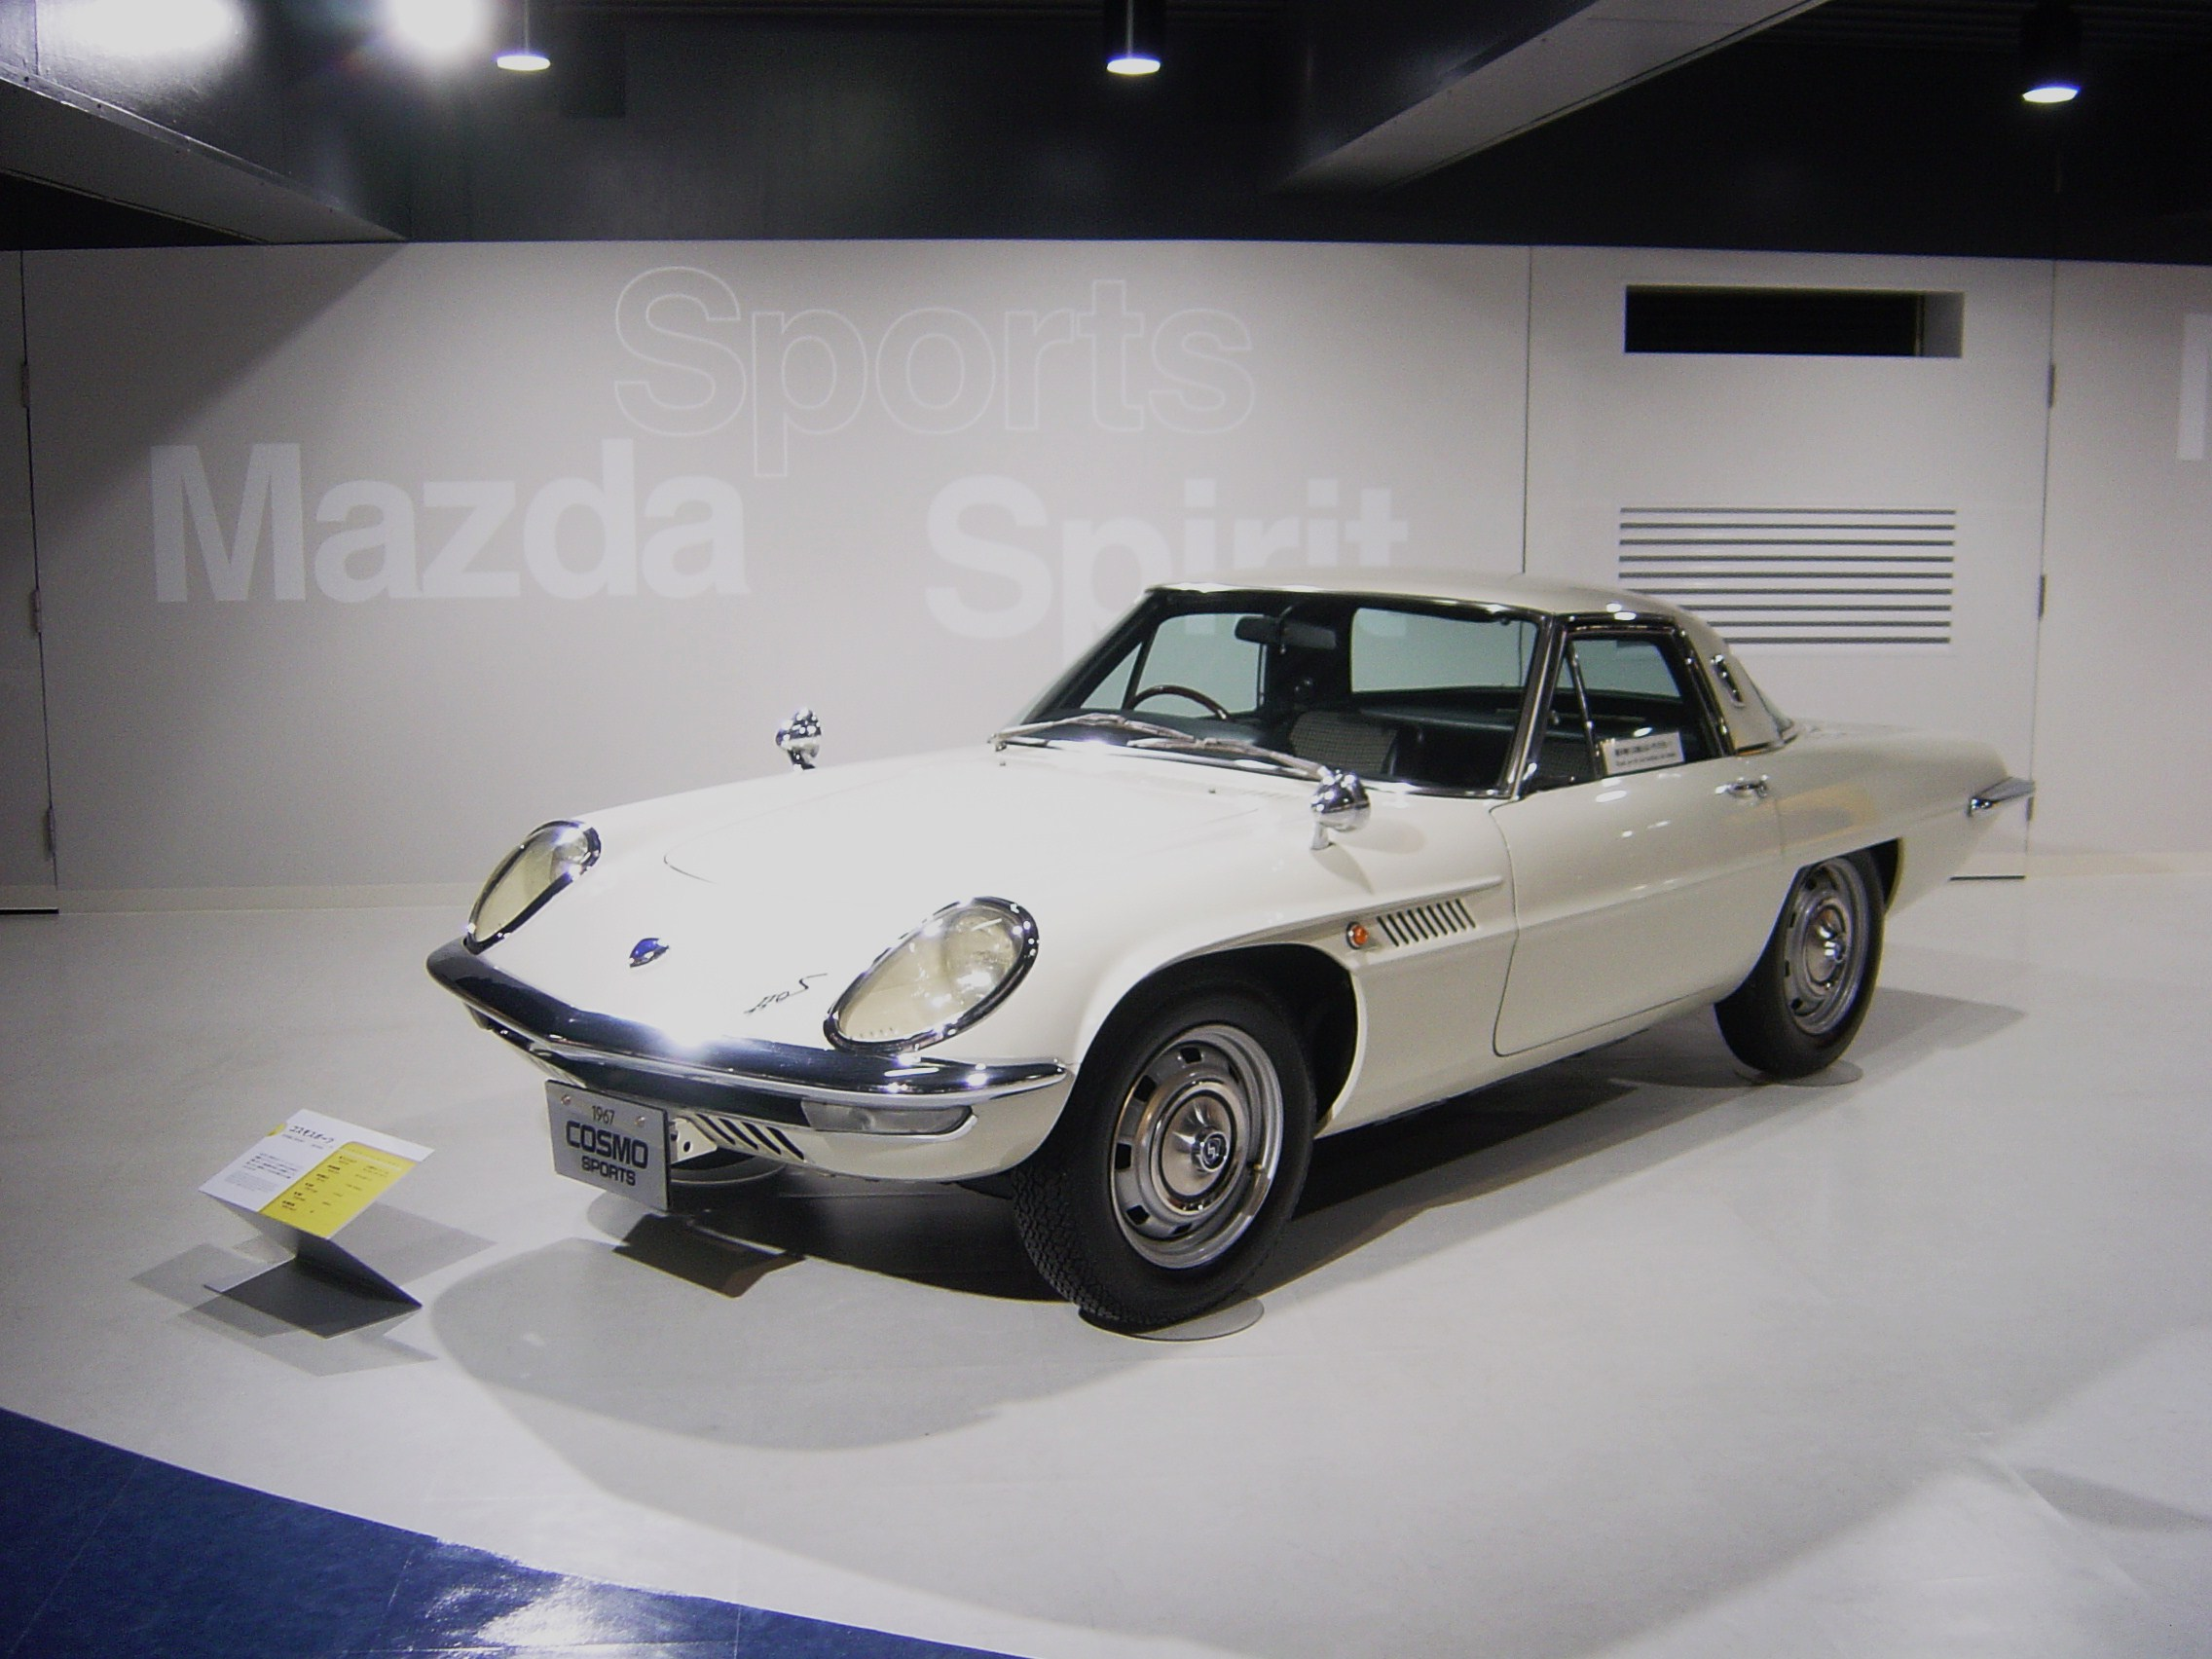 file mazda cosmo wikimedia commons. Black Bedroom Furniture Sets. Home Design Ideas